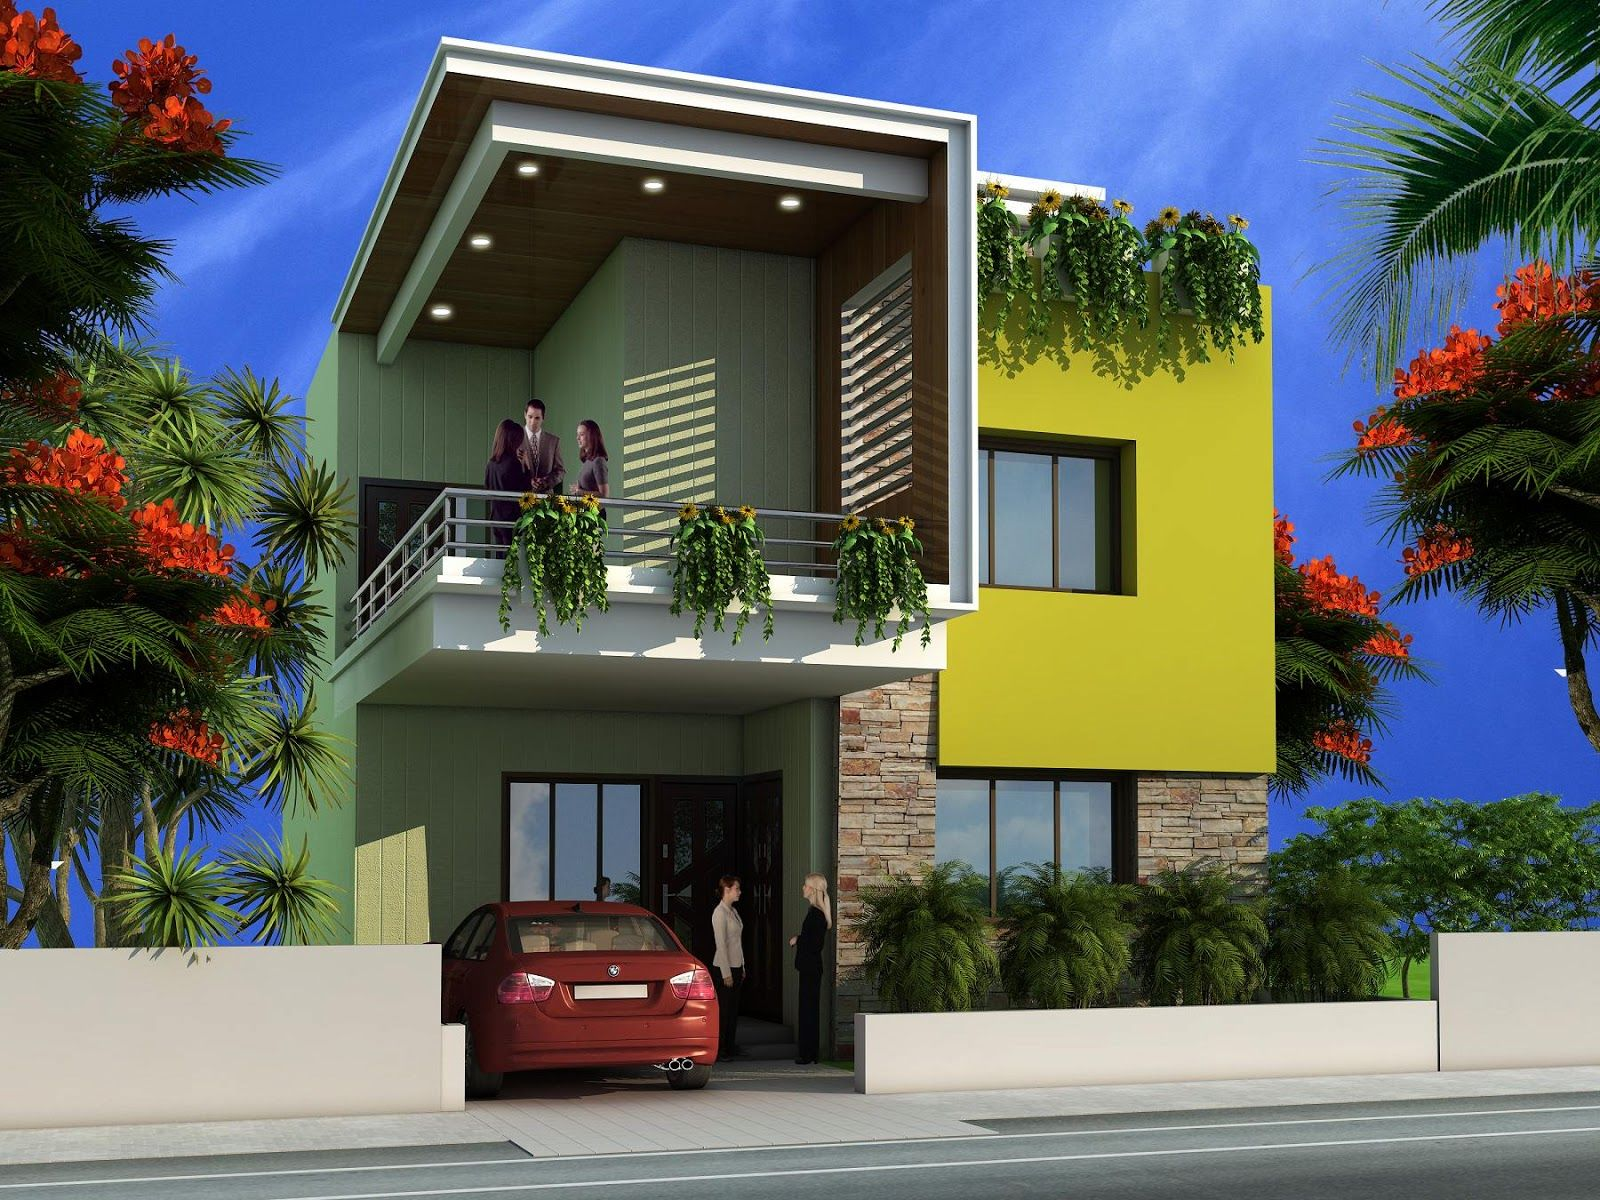 Architecture House Design Ideas duplex house exterior - google search | facade | pinterest